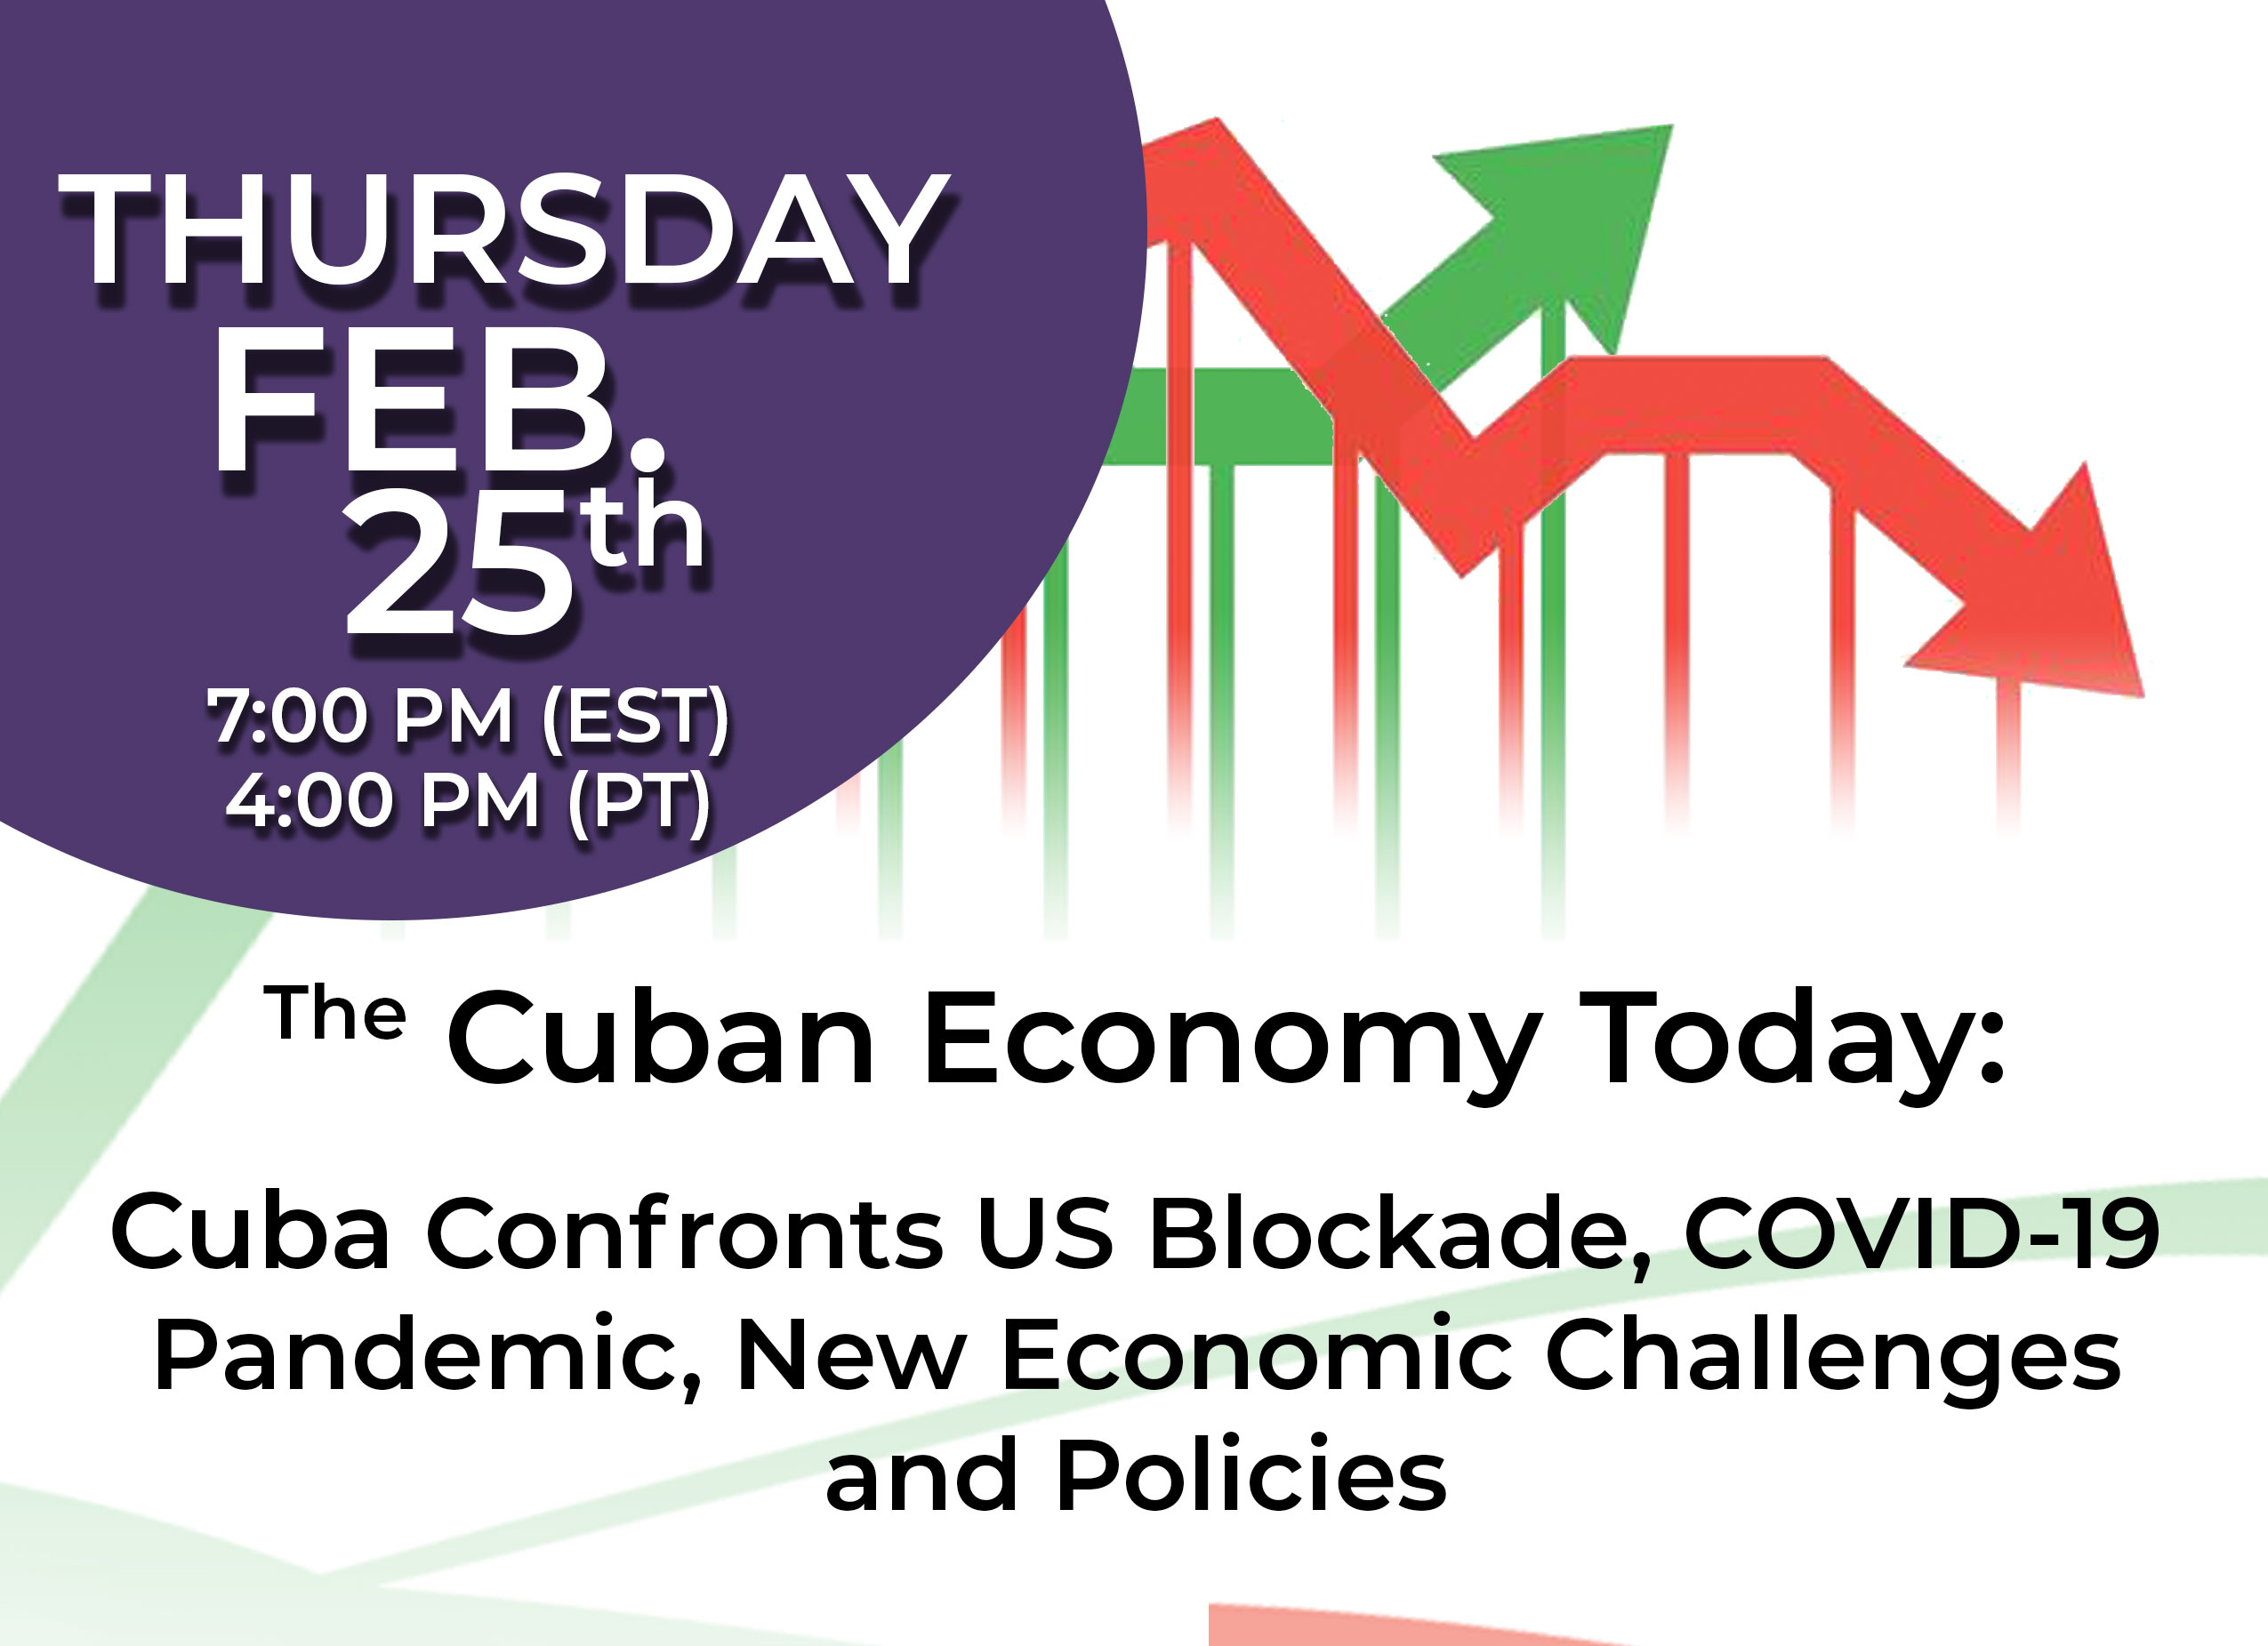 The Cuban Economy Today: Cuba Confronts US Blockade, COVID-19 Pandemic, New Economic Challenges and Policies